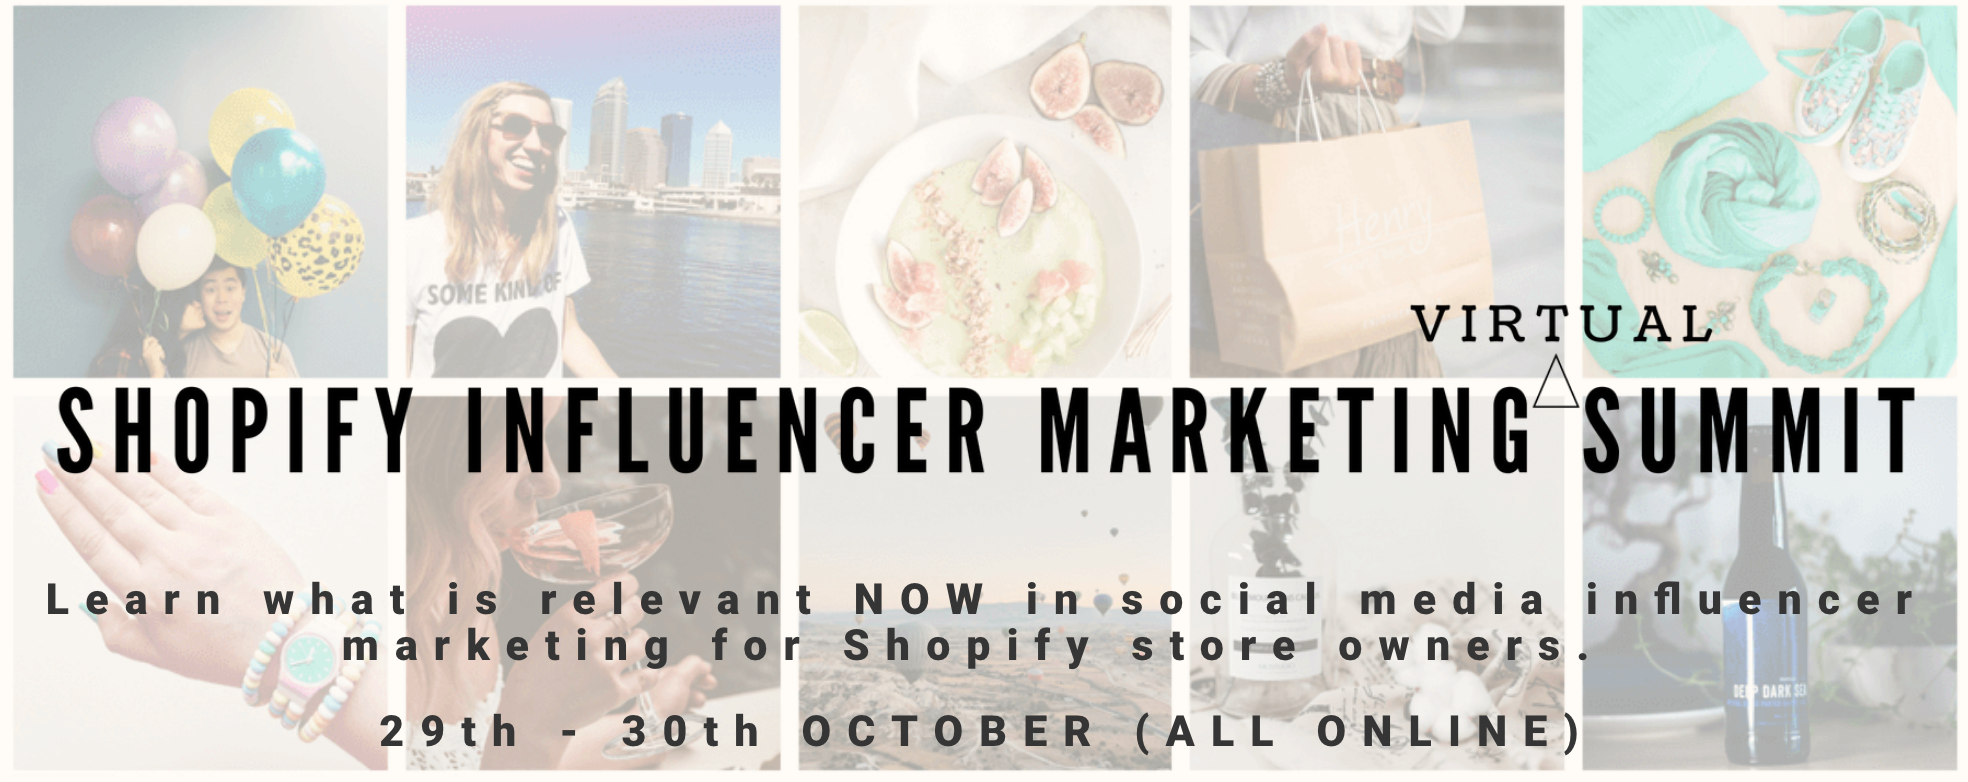 Shopify Influencer Marketing Summit - 29th - 30th October 2018